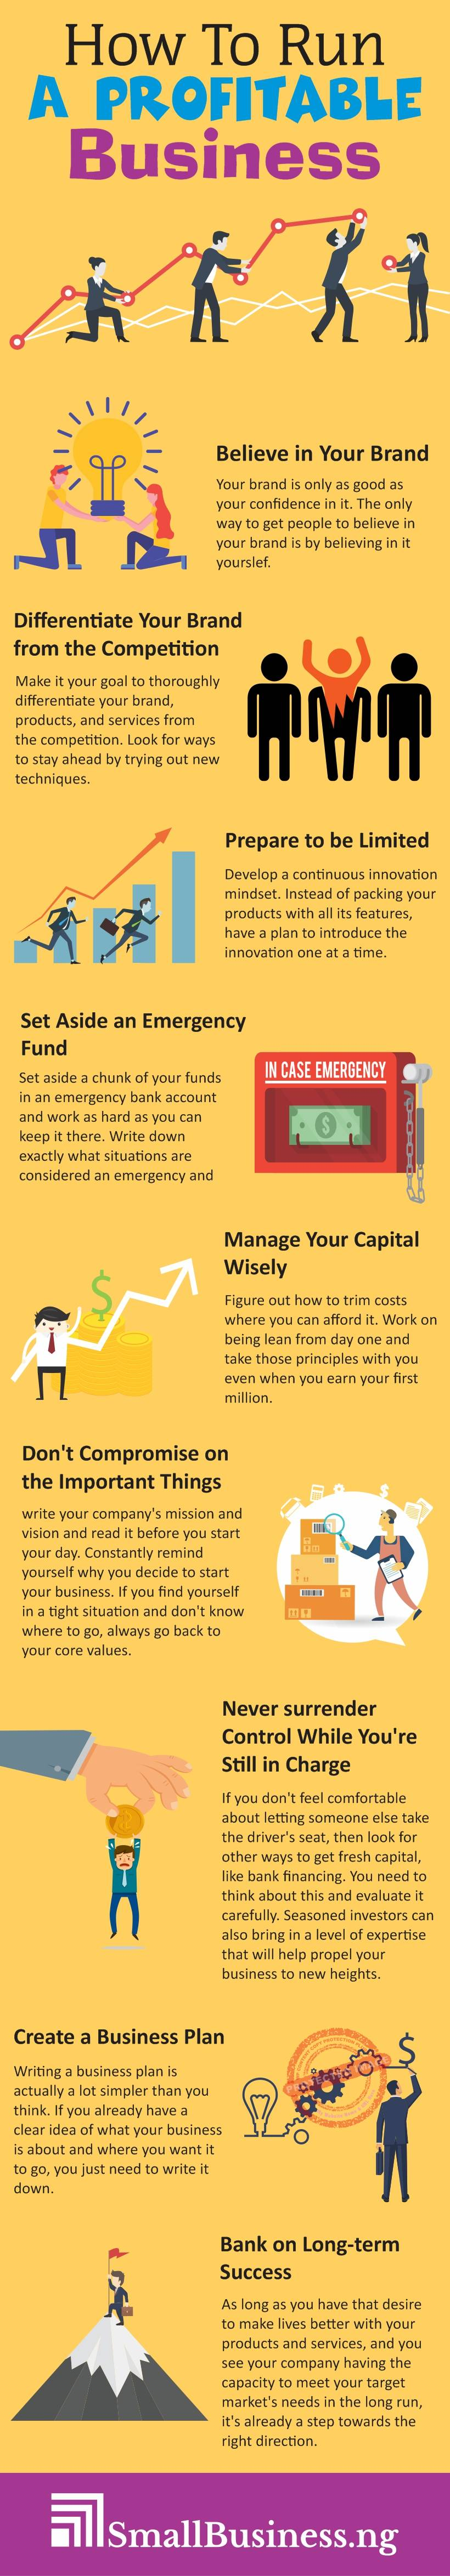 How To Run A Profitable Business Infographic